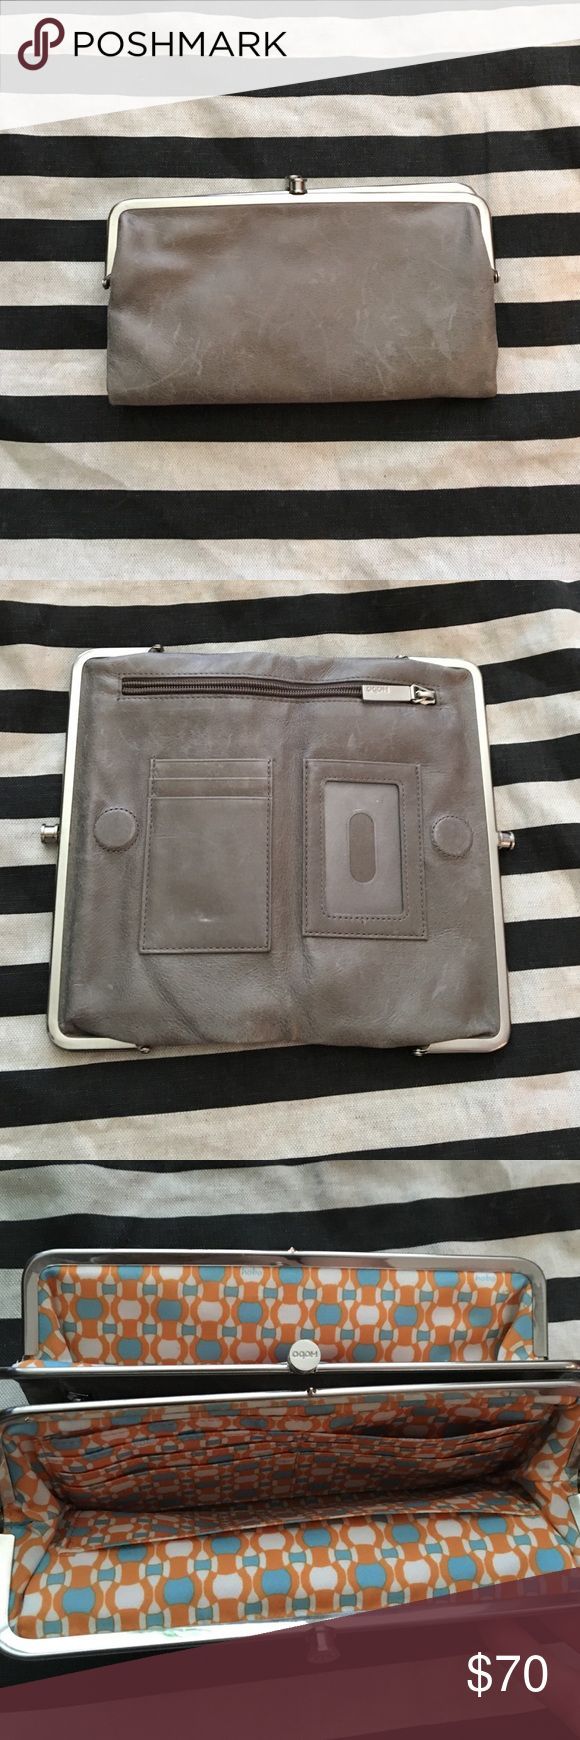 Grey hobo wallet Grey hobo wallet HOBO Bags Wallets